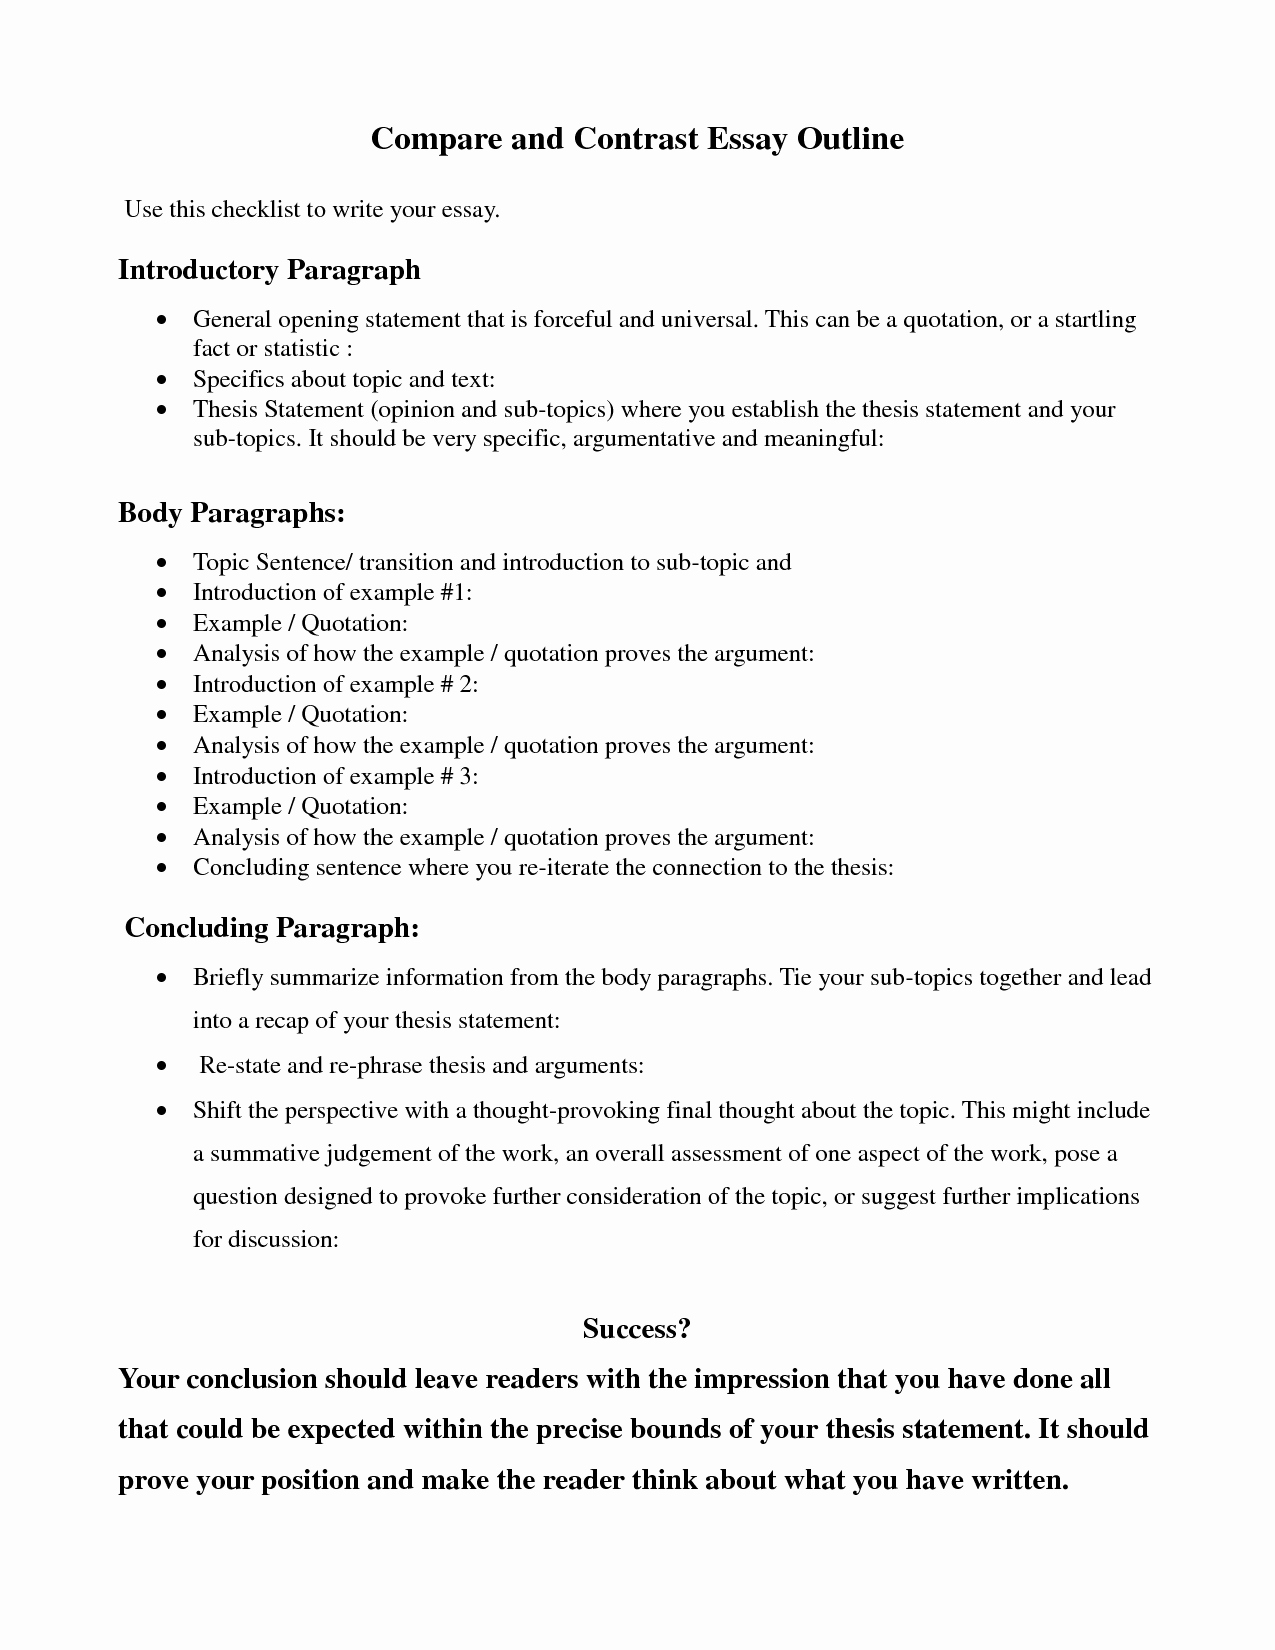 How to Outline An Essay Inspirational Pare Contrast Essay Outline Google Search